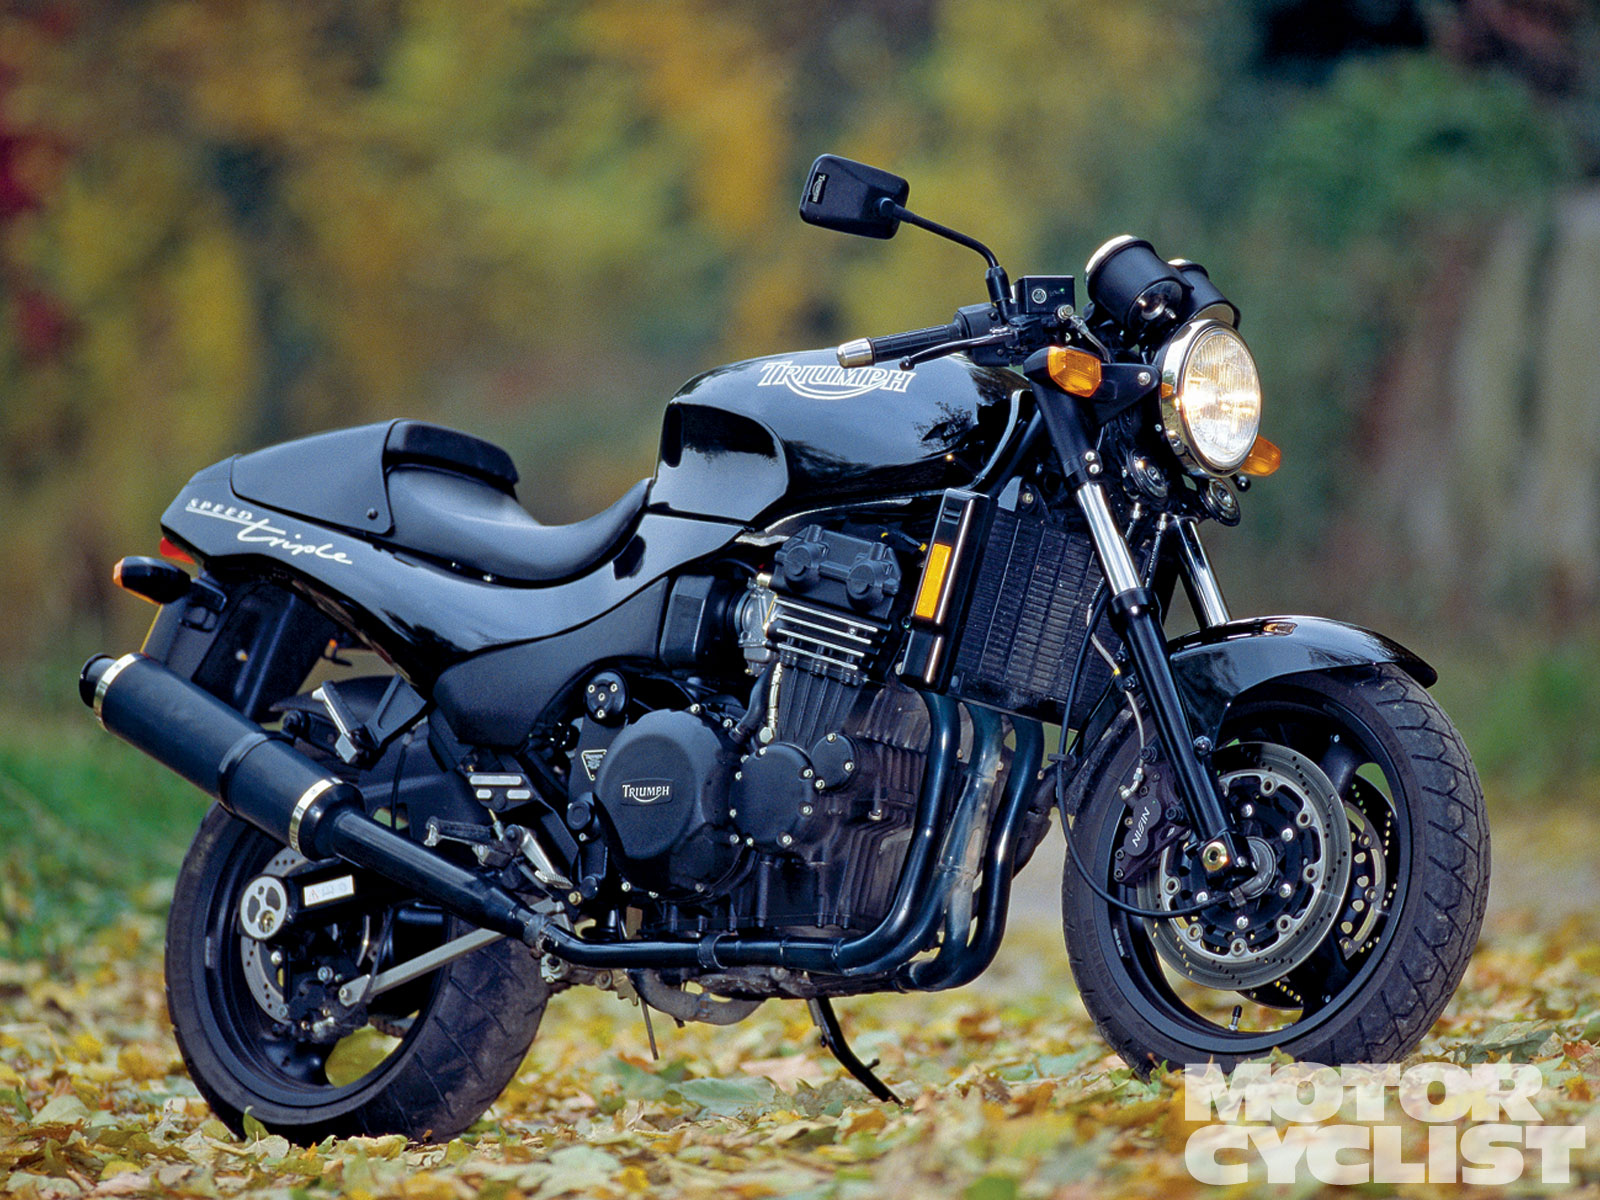 Triumph Speed Triple 900 1996 images #159246